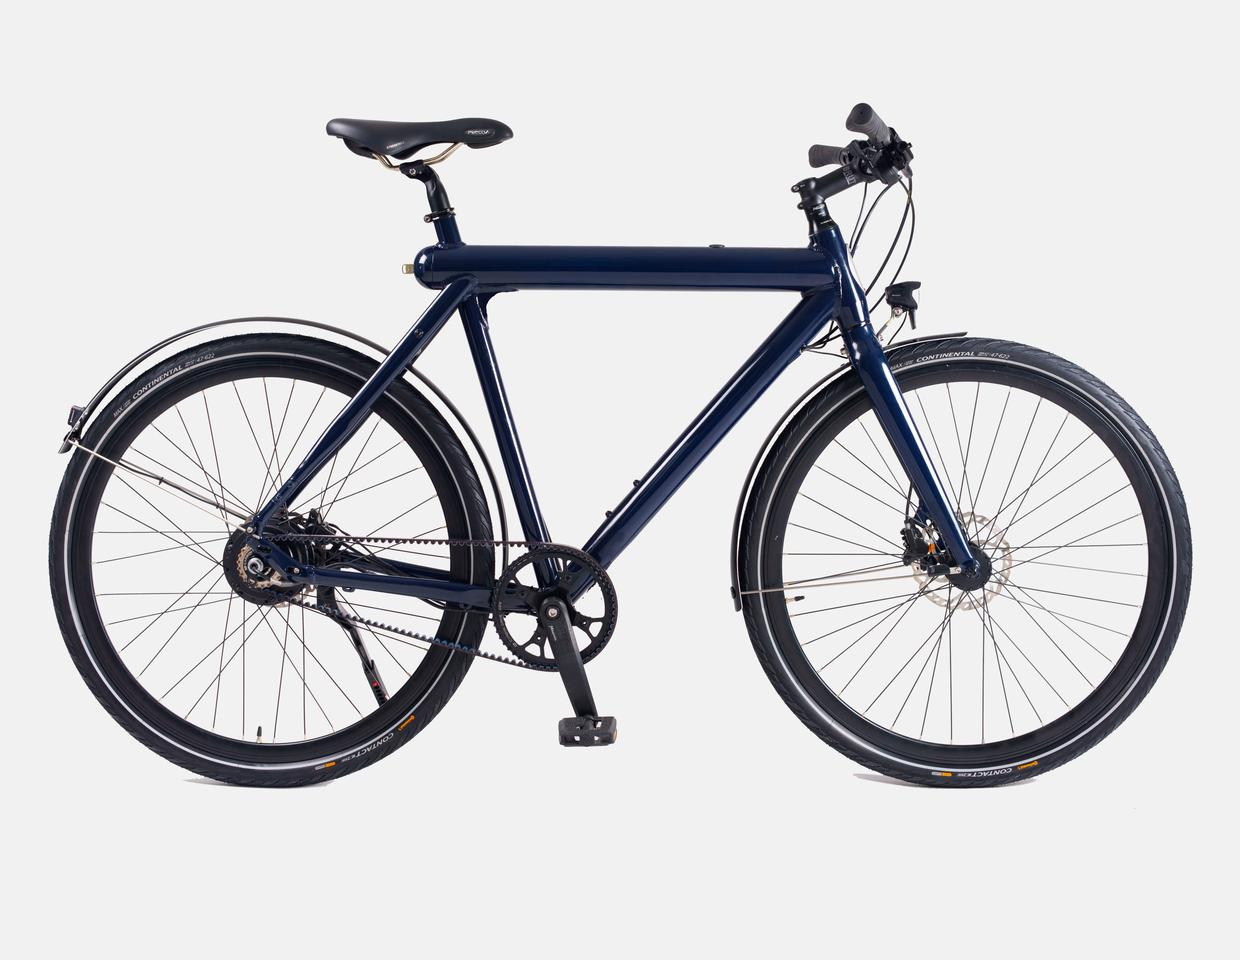 The Rocket E-bike offers up to 100 km of motor assist per two-hour charge of the frame-integrated battery, which is removable for charging indoors